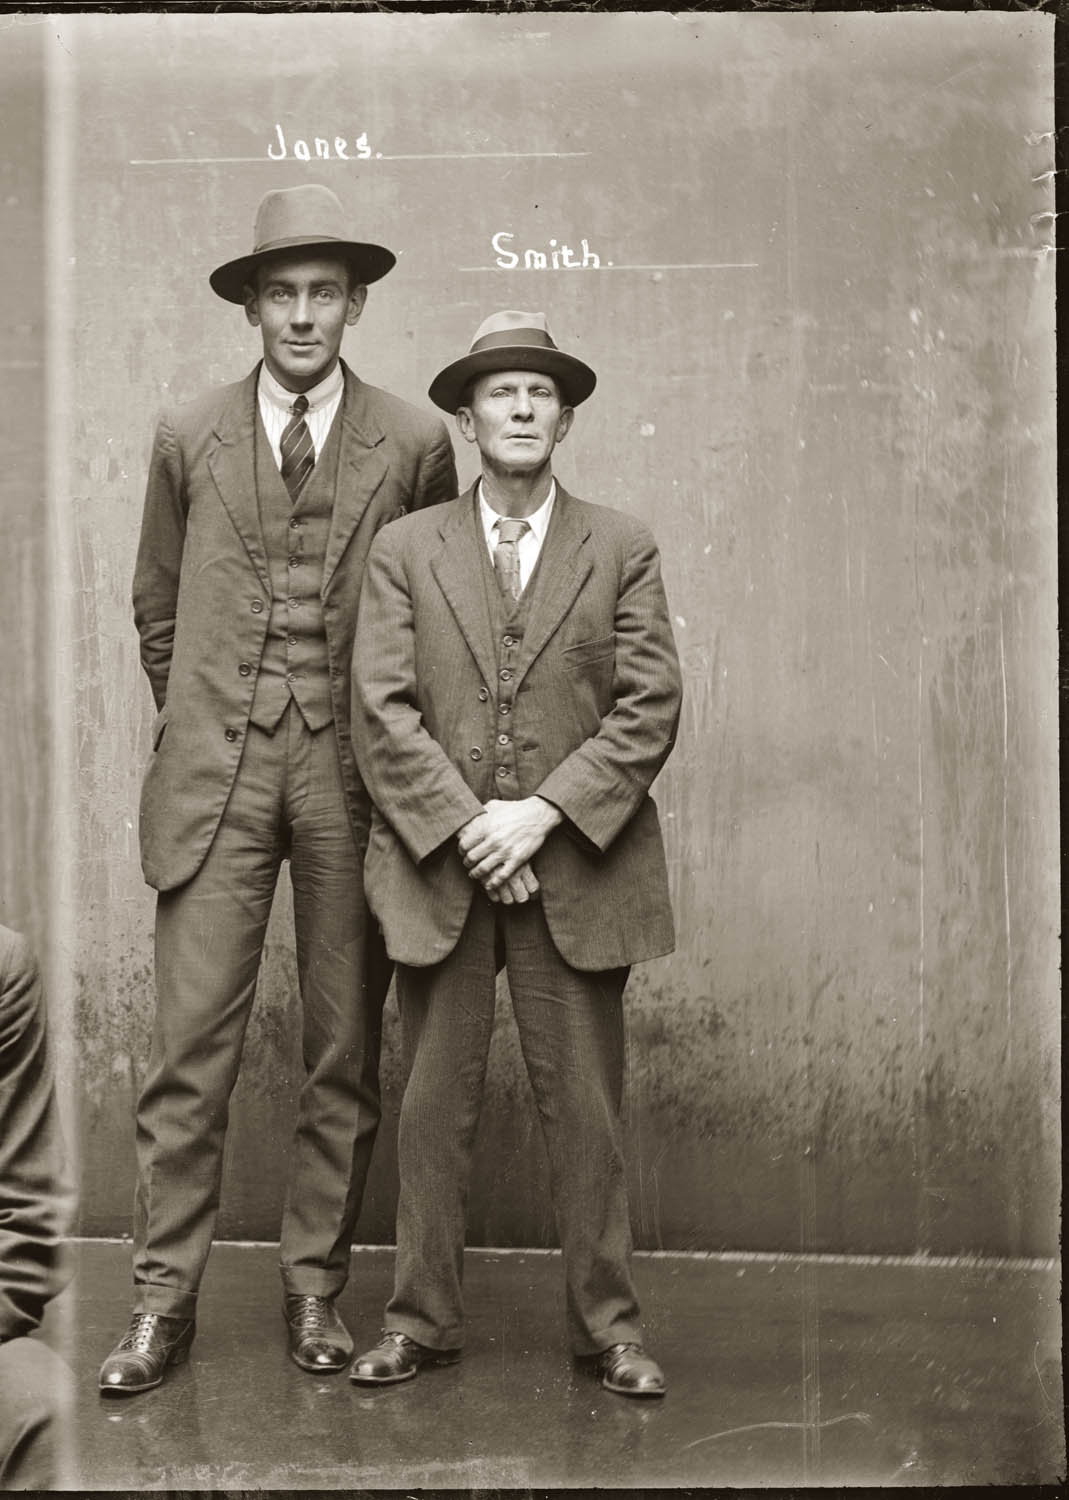 Mug shot of T S Jones and W A Smith, 15 July 1921, Central cells.